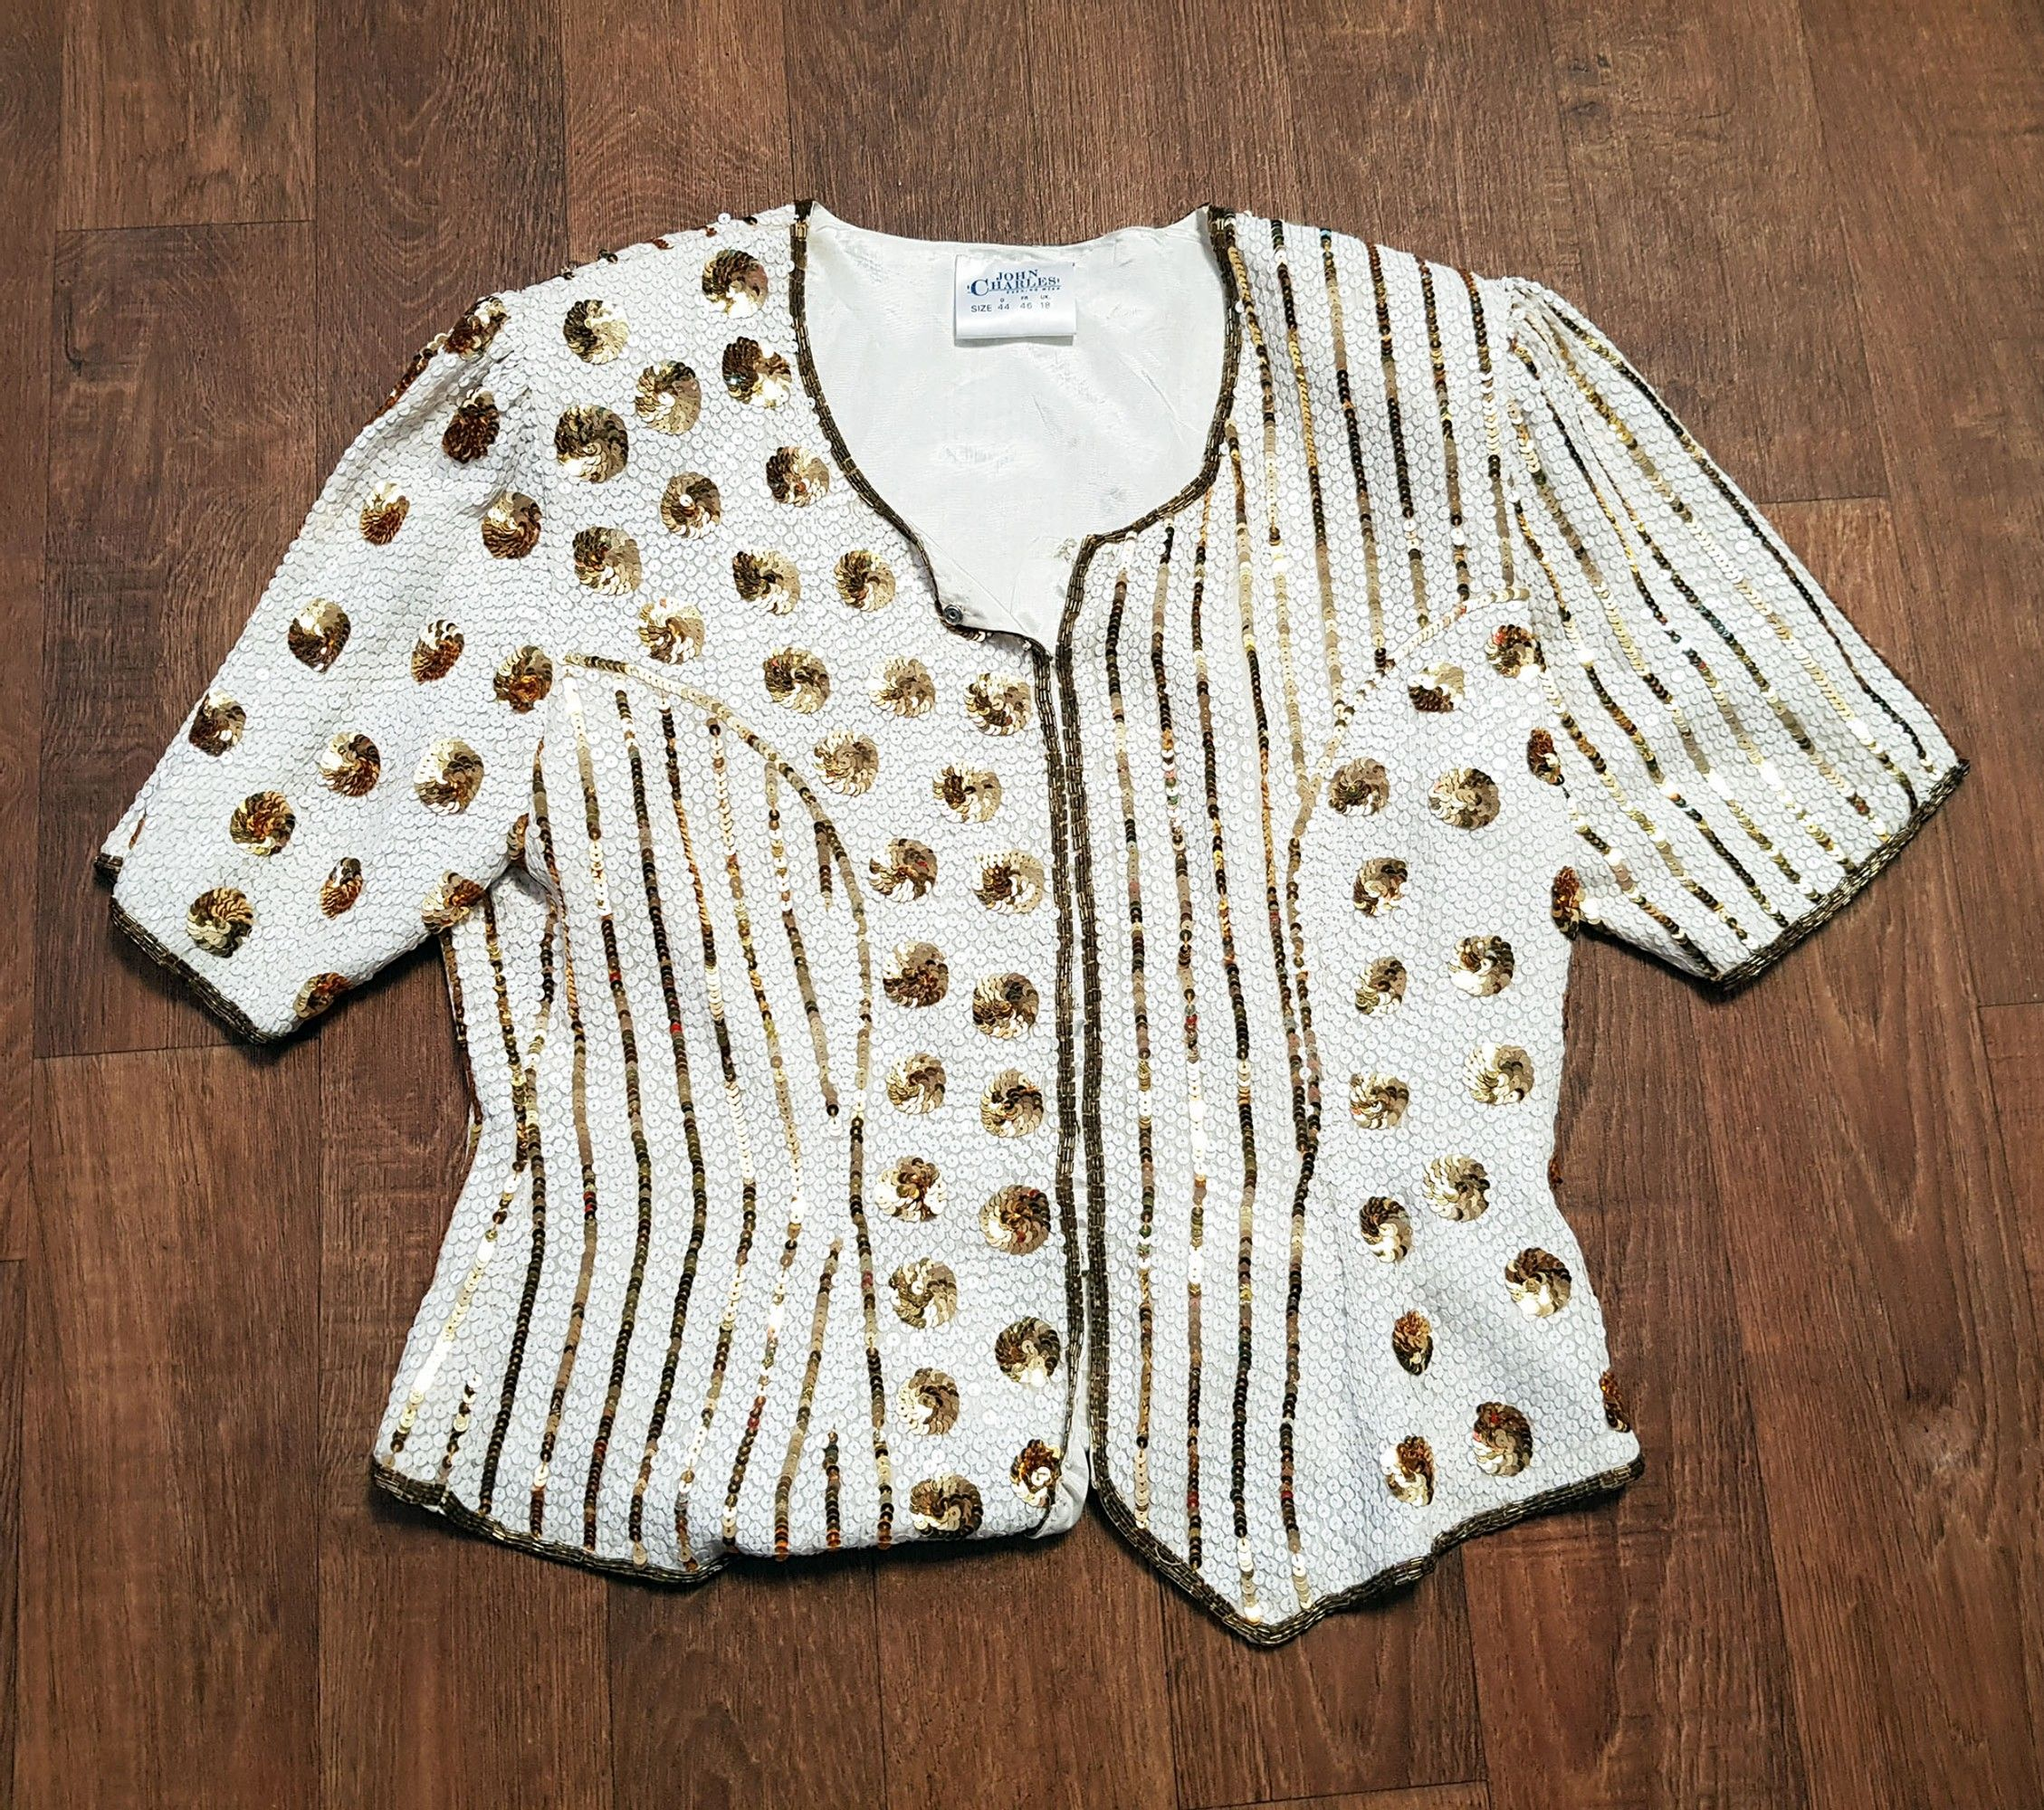 1980s Vintage John Charles White & Gold Sequin Top UK Size 16